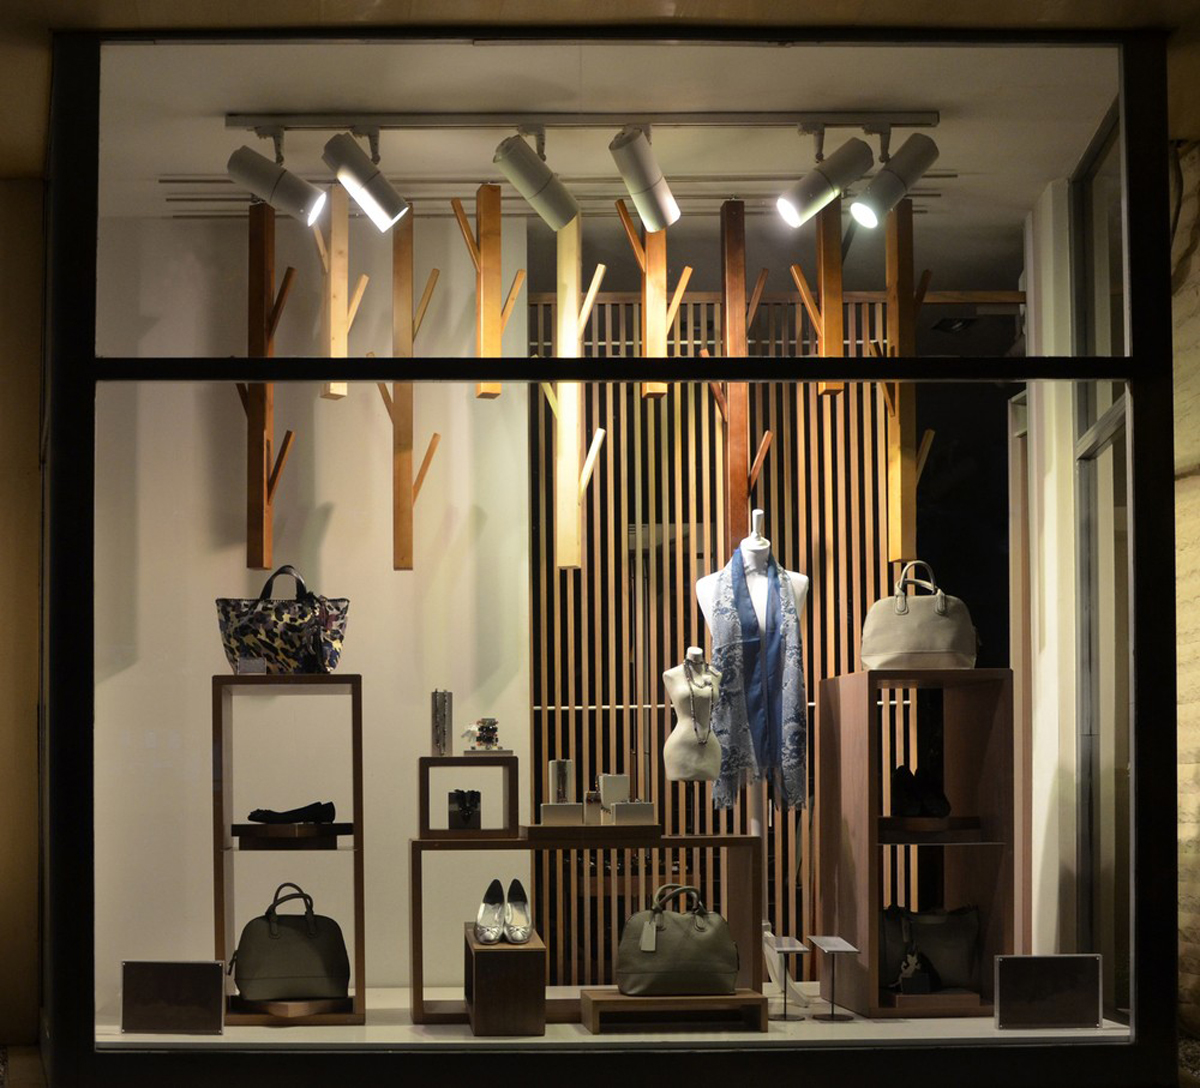 lighting sets the stage for your shopping experience